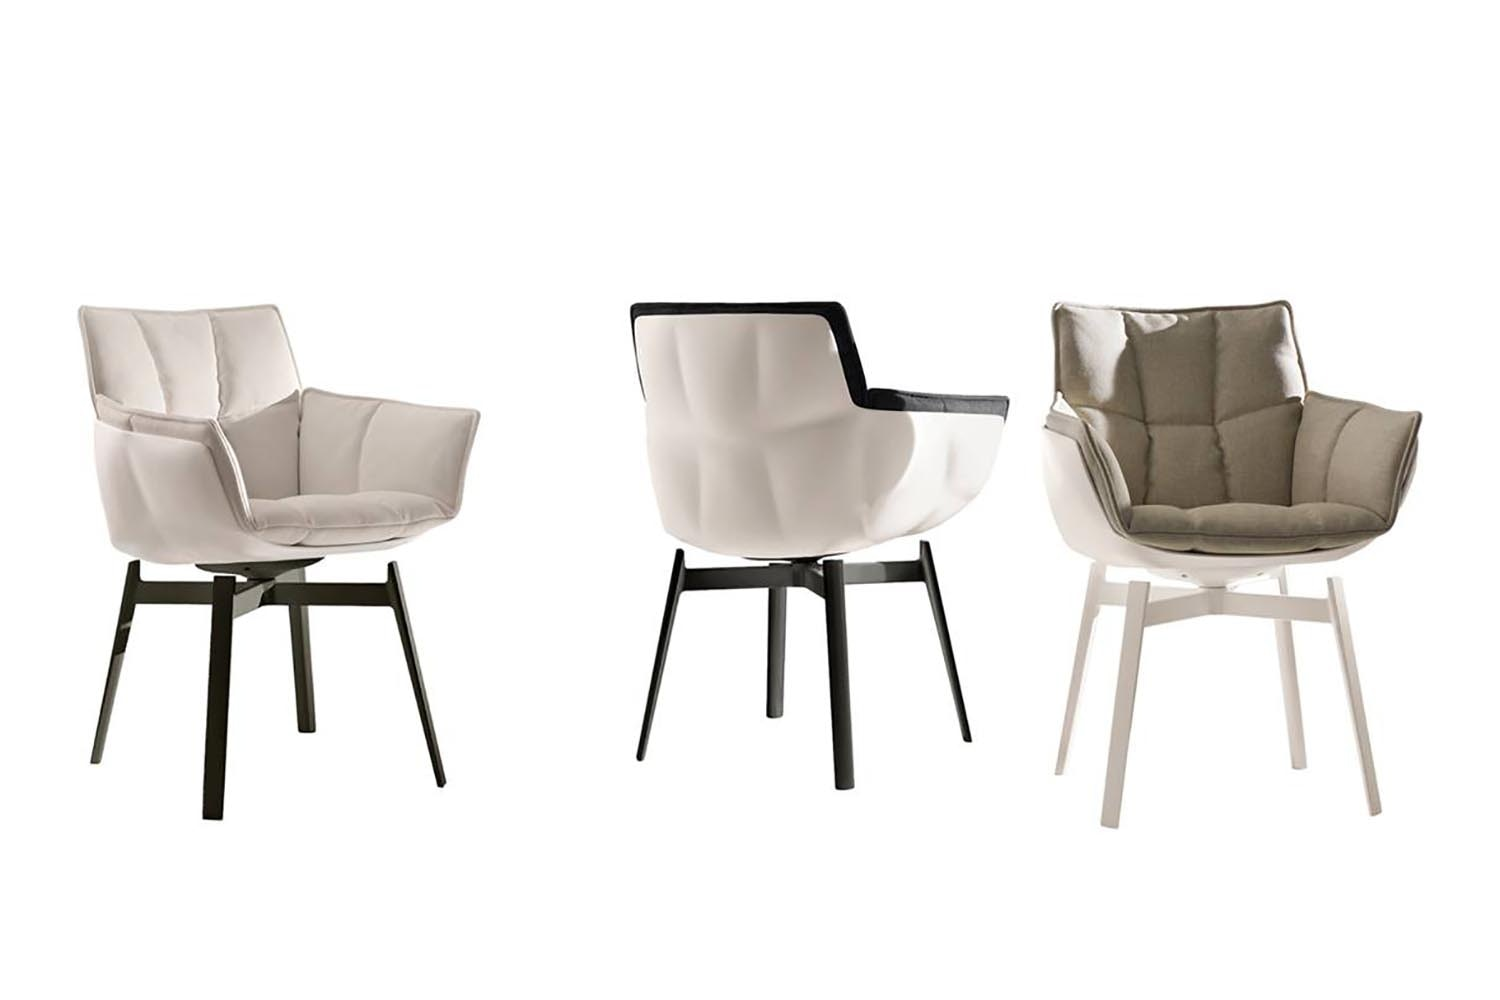 space furniture chairs. Husk Outdoor Chair By Patricia Urquiola For B\u0026B Italia Space Furniture Chairs O